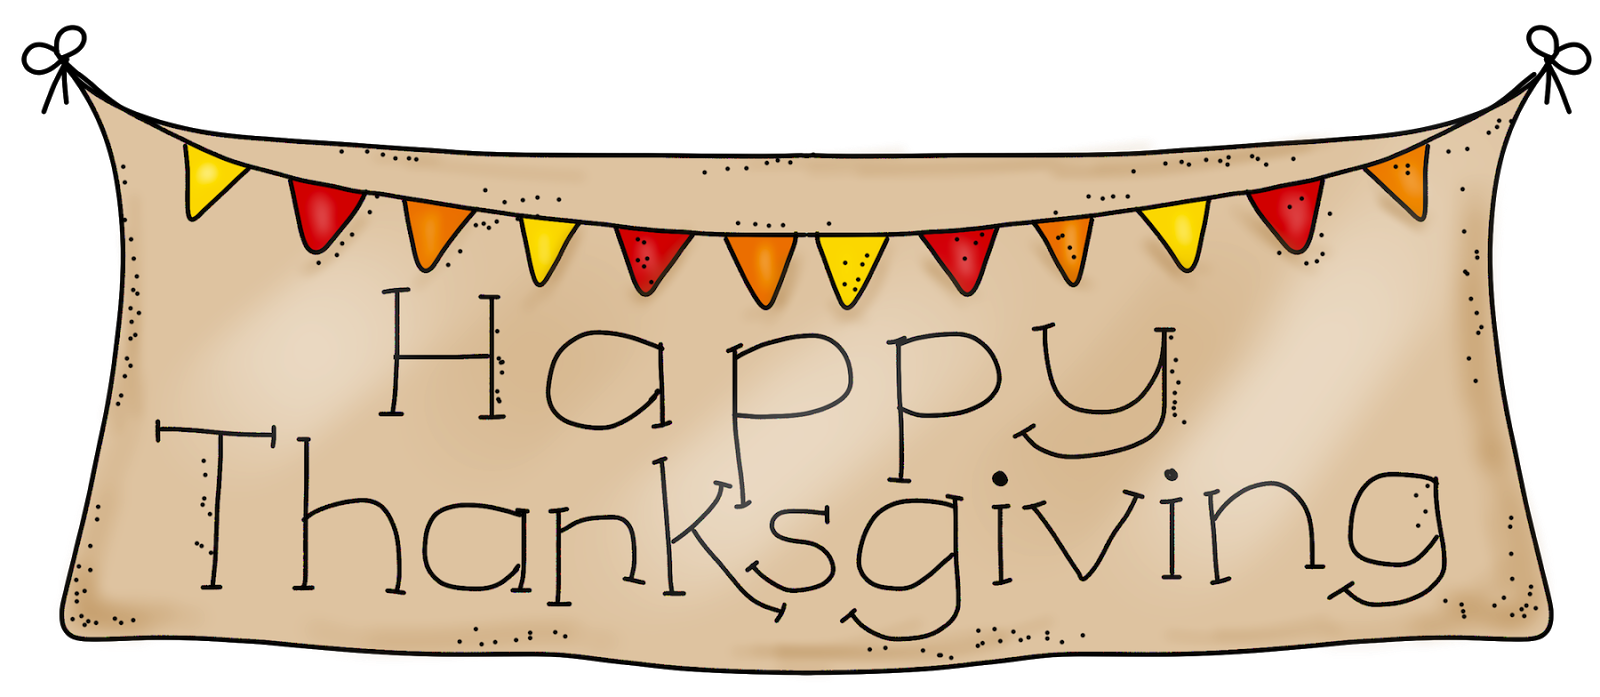 Free christian thanksgiving clipart transparent library Thanksgiving clipart printables - ClipartFest transparent library